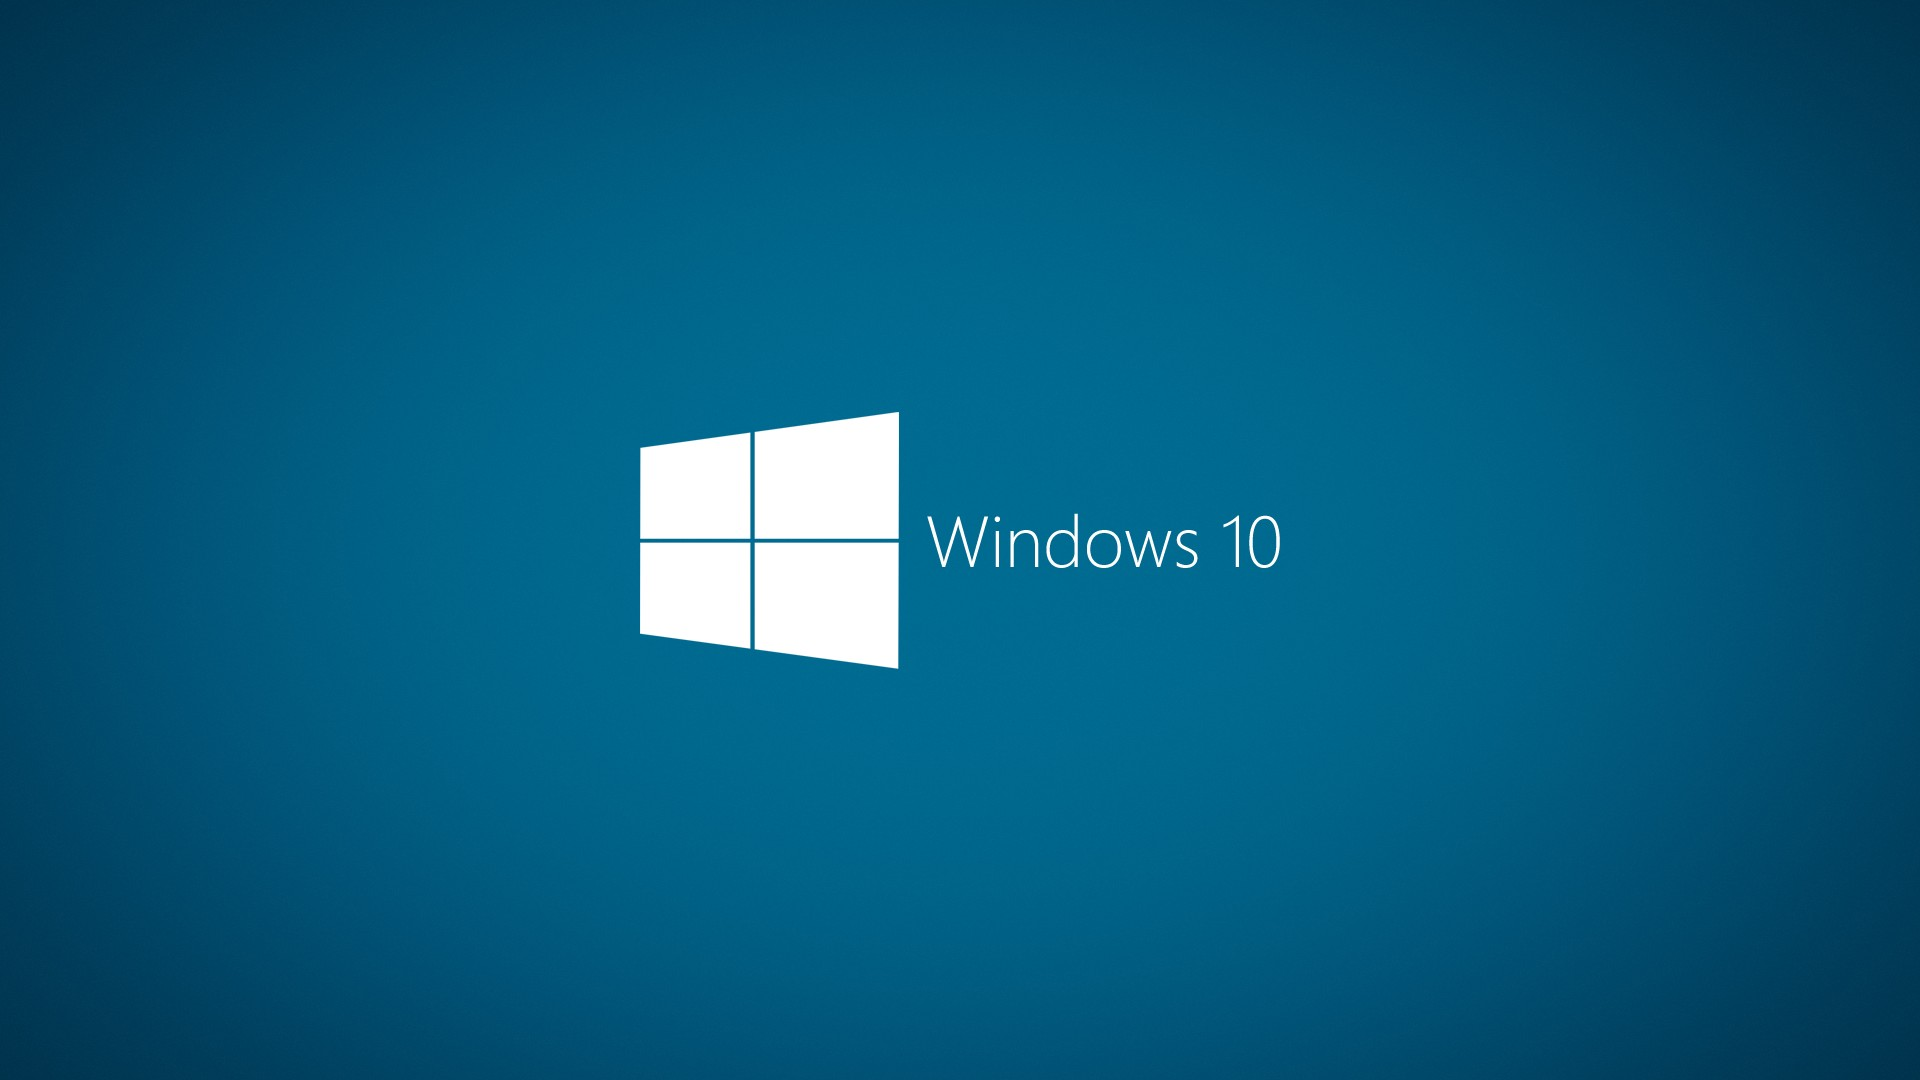 Windows-10-HD-Wallpaper-10